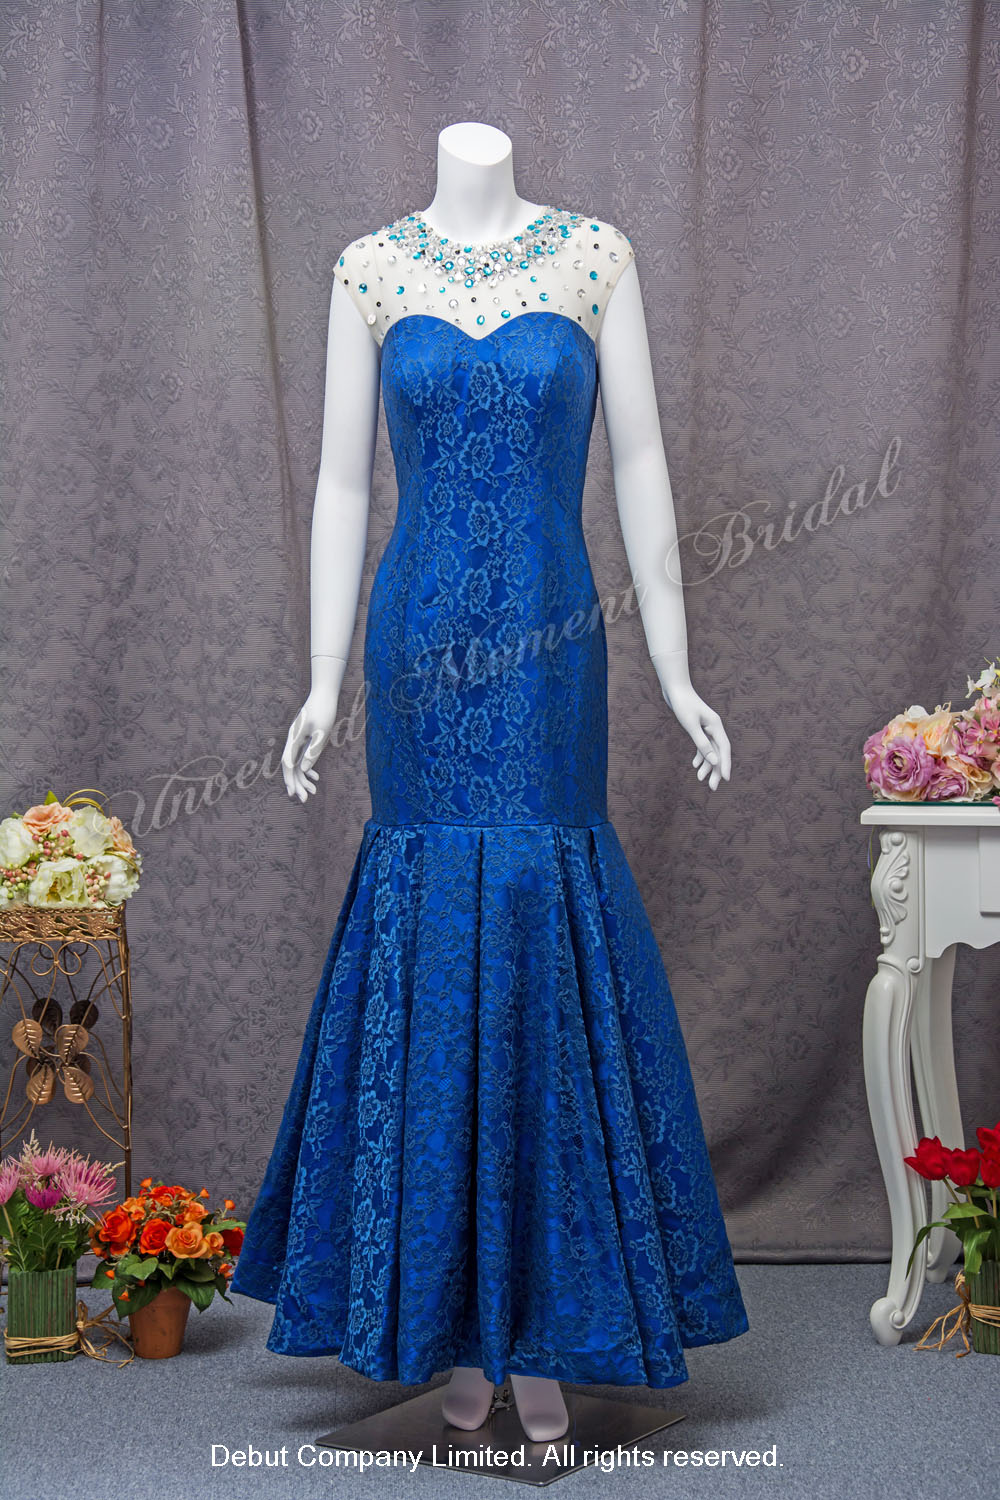 Royal Blue, cap-sleeved, trumpet lace Mother-of-Bride Dress with a decorative jeweled neckline 寶藍色, 雞翼袖, 閃石裝飾圓領, 媽咪晚裝裙